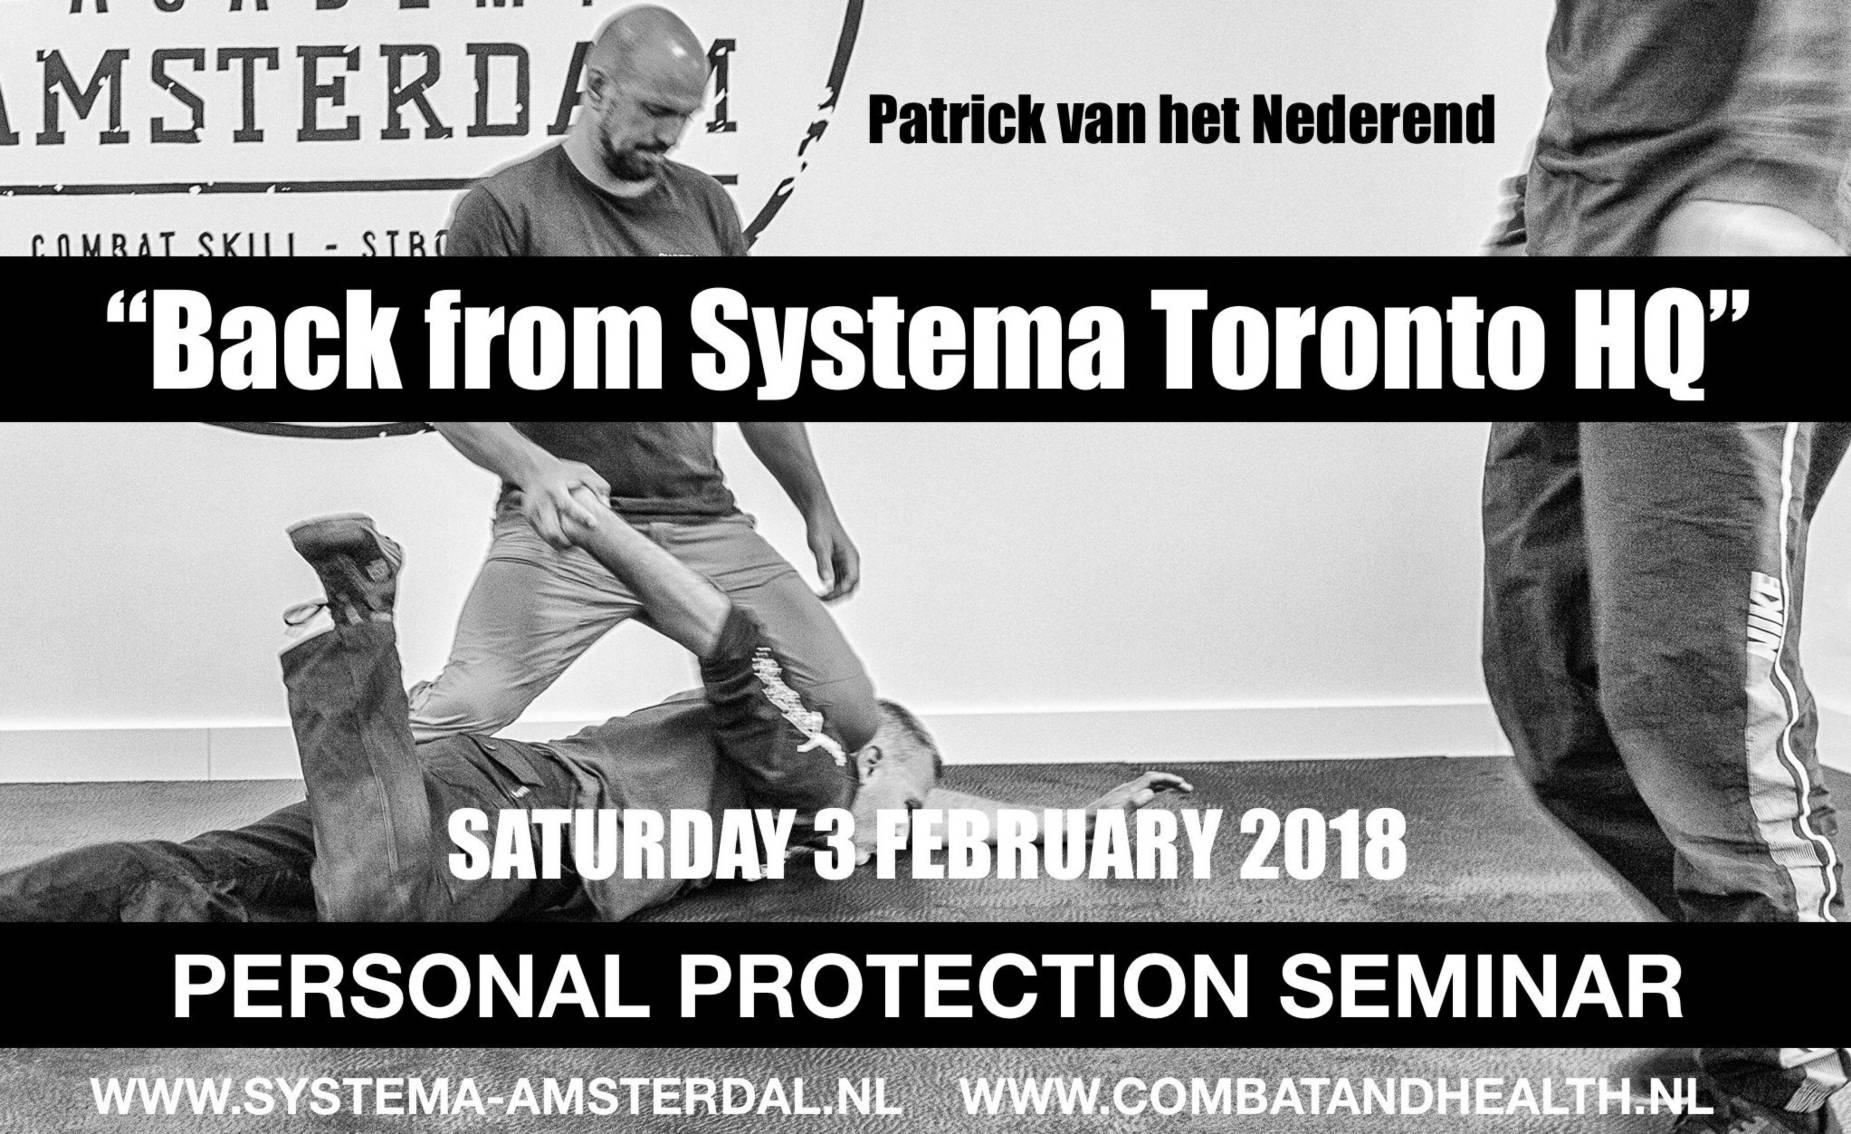 Back from Systema Toronto HQ Patrick van het Nederend